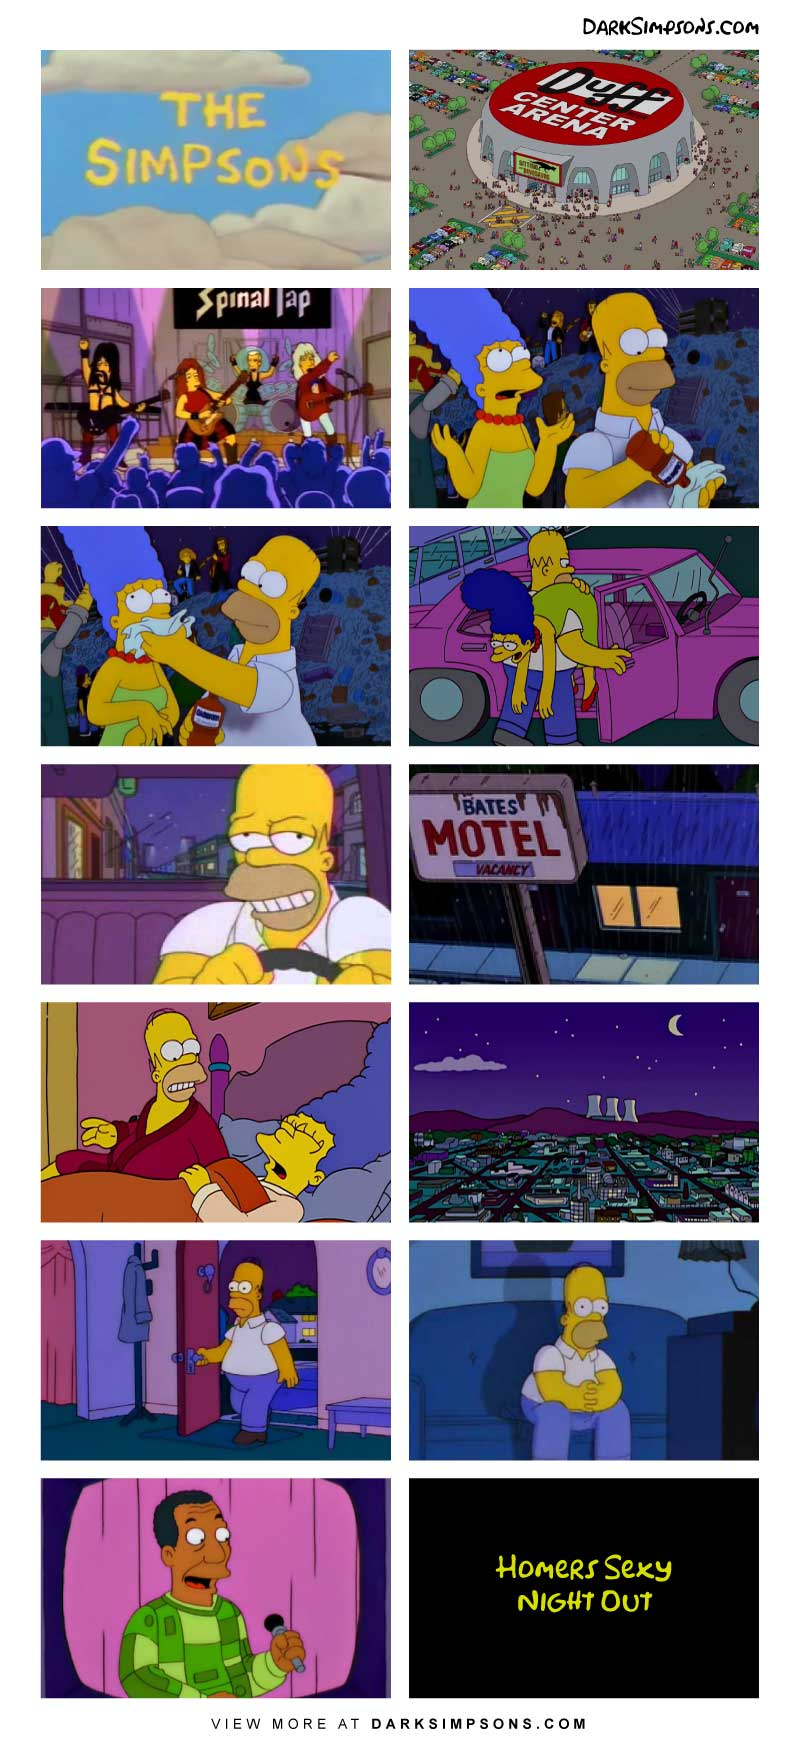 Homer Follows In His Heros Footsteps And Attends A Spinal Tap Concert Where He Meets An